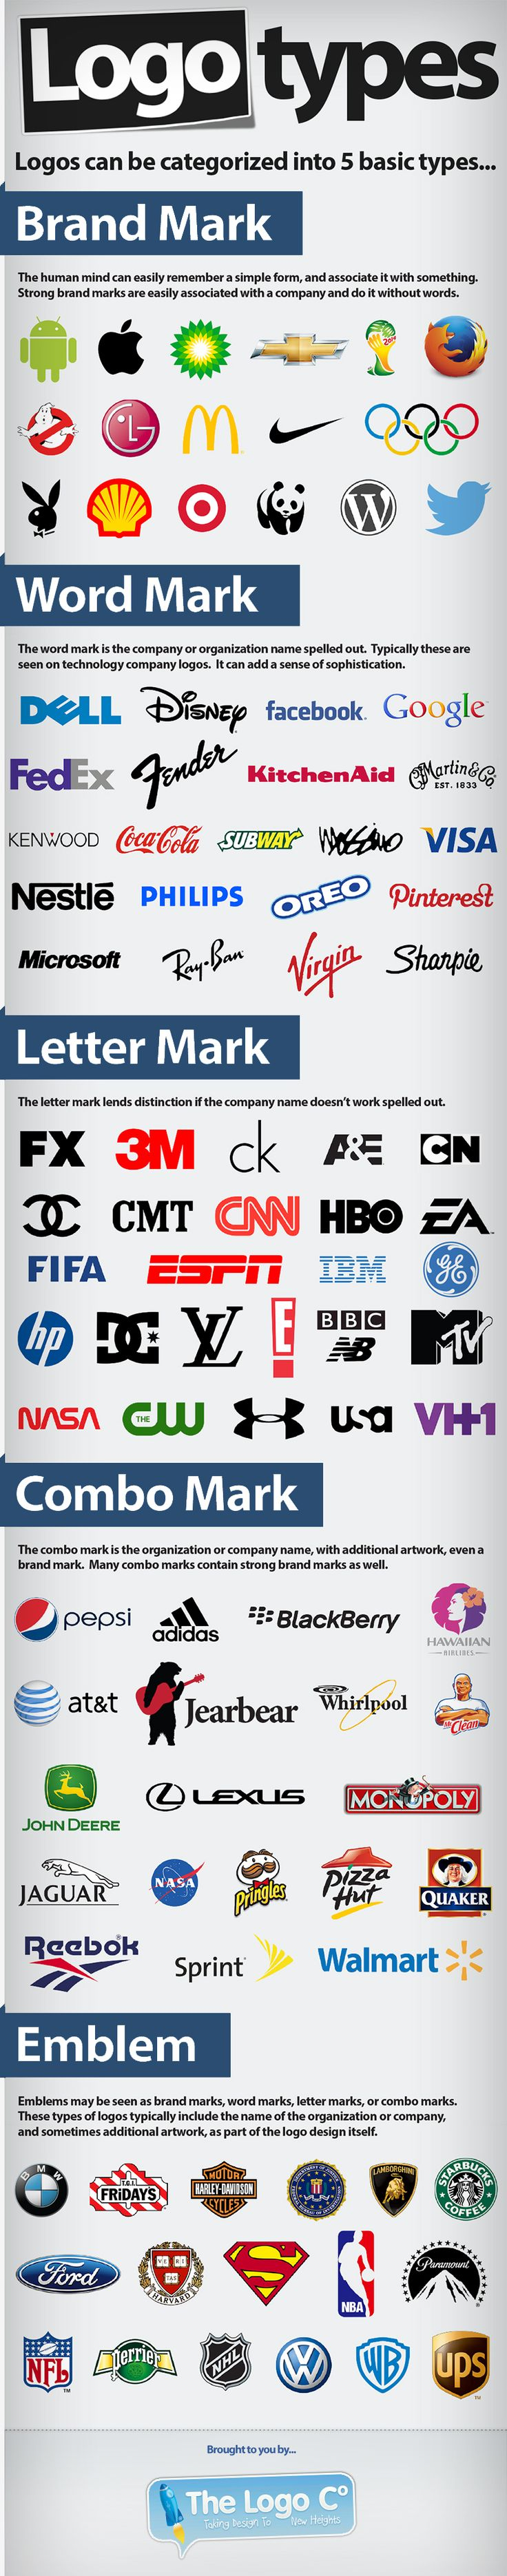 [INFOGRAPHIC] Hay 5 tipos de logos, ¿a cuál pertenece el logotipo de su marca? (Logos can be categorized into 5 basic…